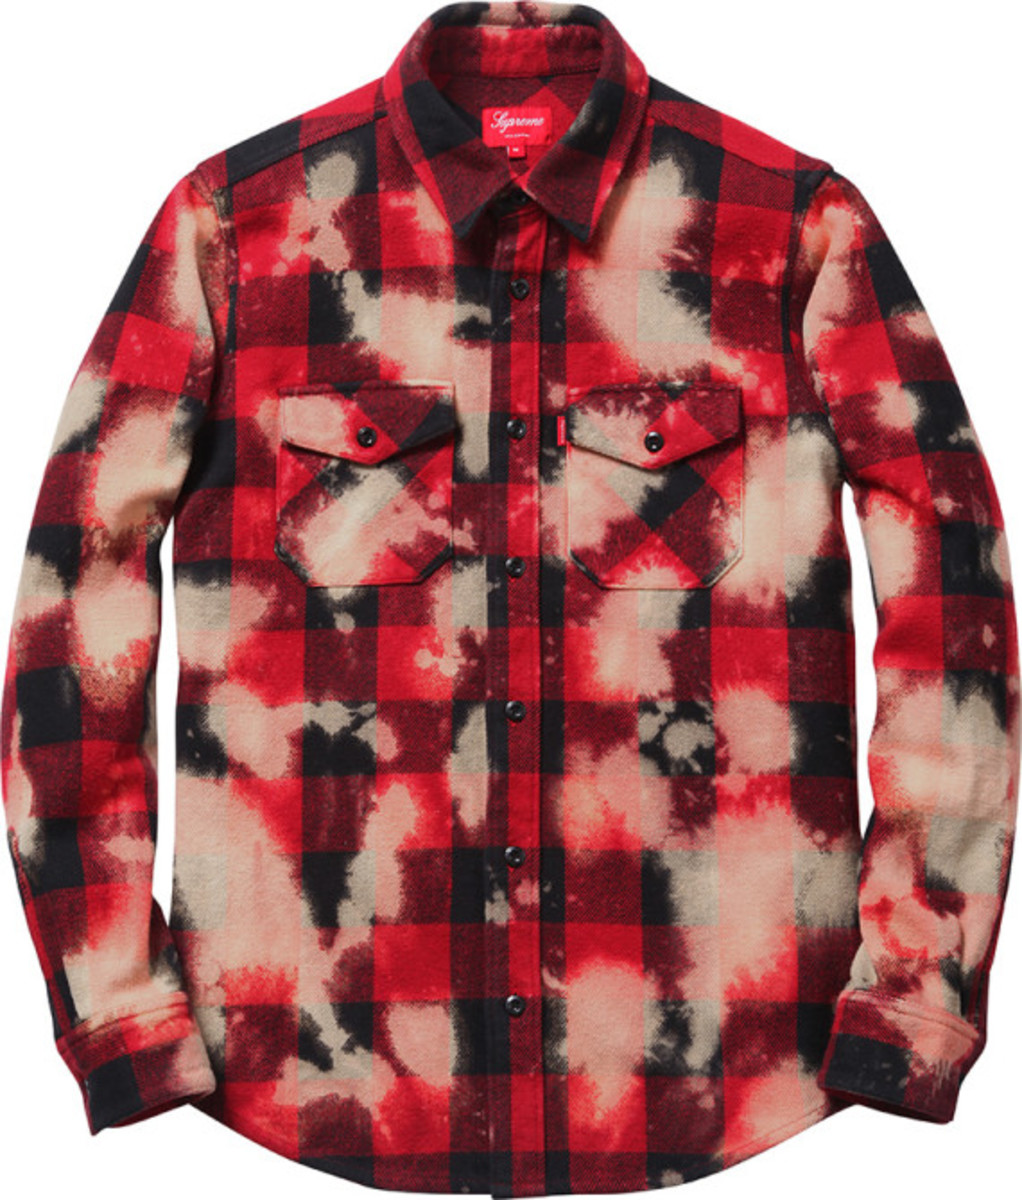 supreme-fall-winter-2013-apparel-collection-039